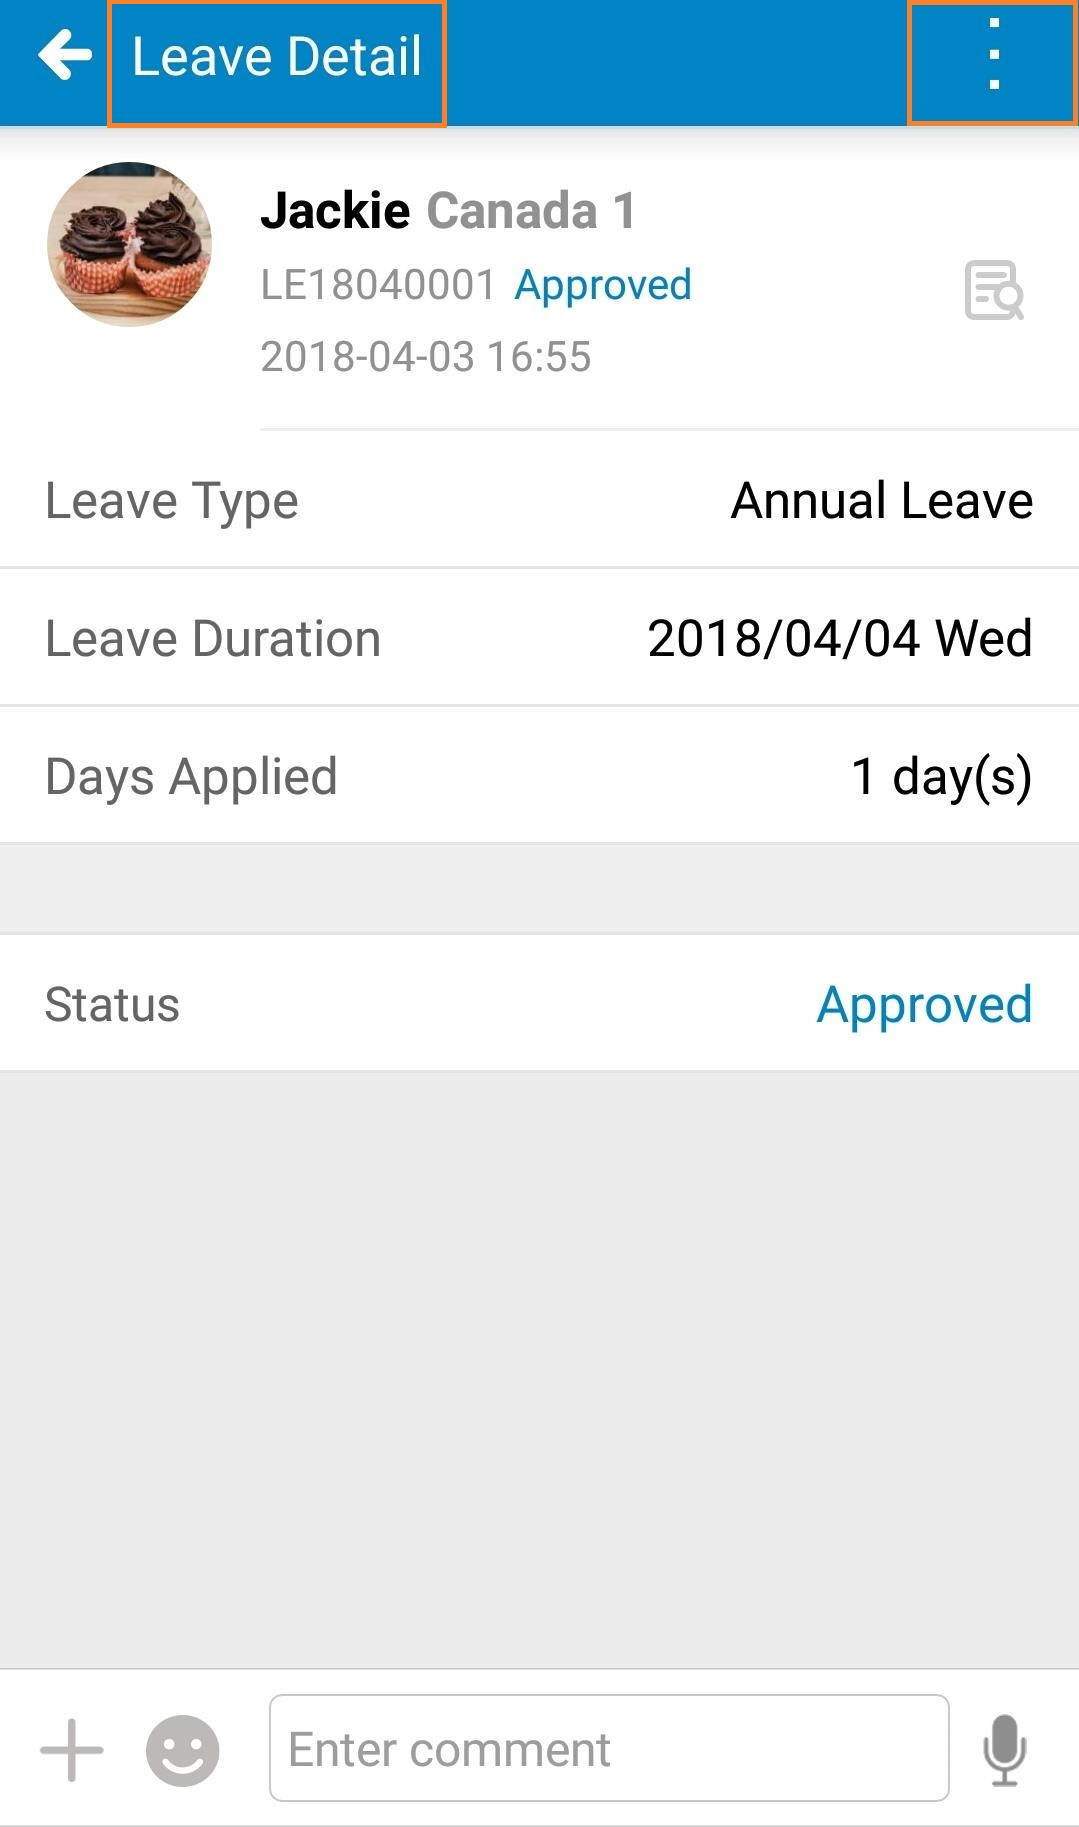 WorkDo-Leave detail report 01